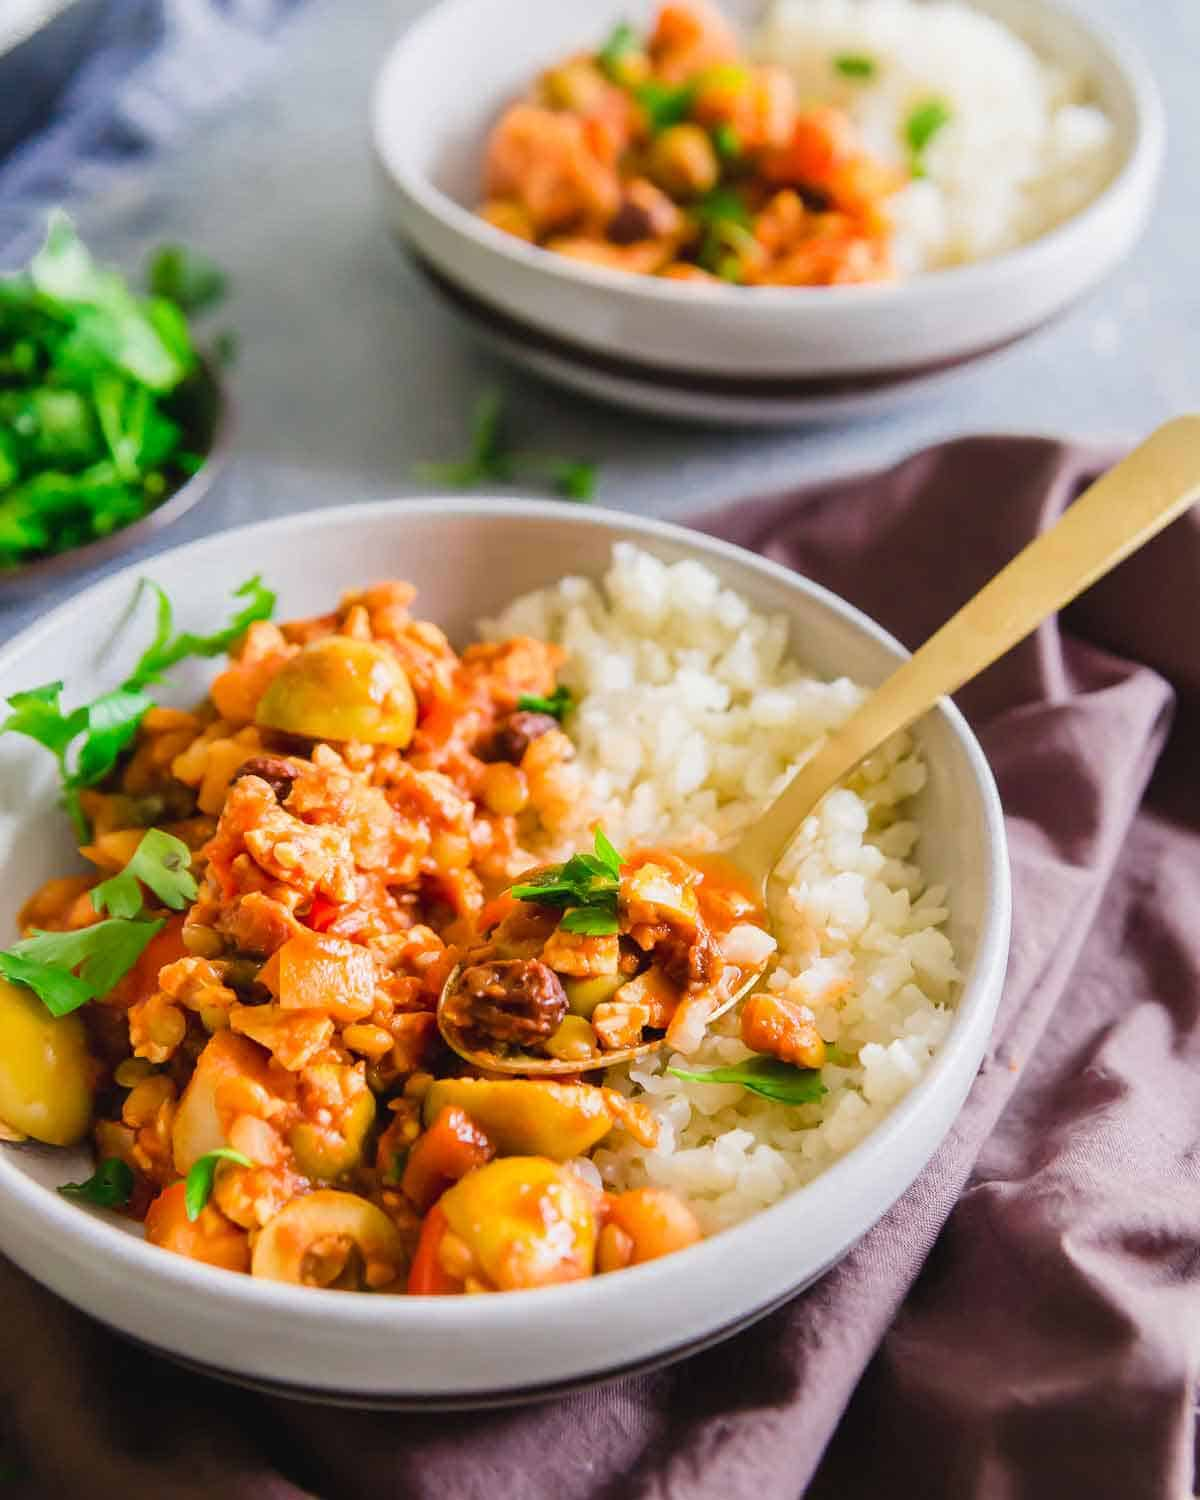 Vegan picadillo is a hearty Cuban recipe made with lentils and tempeh instead of the traditional beef for a plant based option.